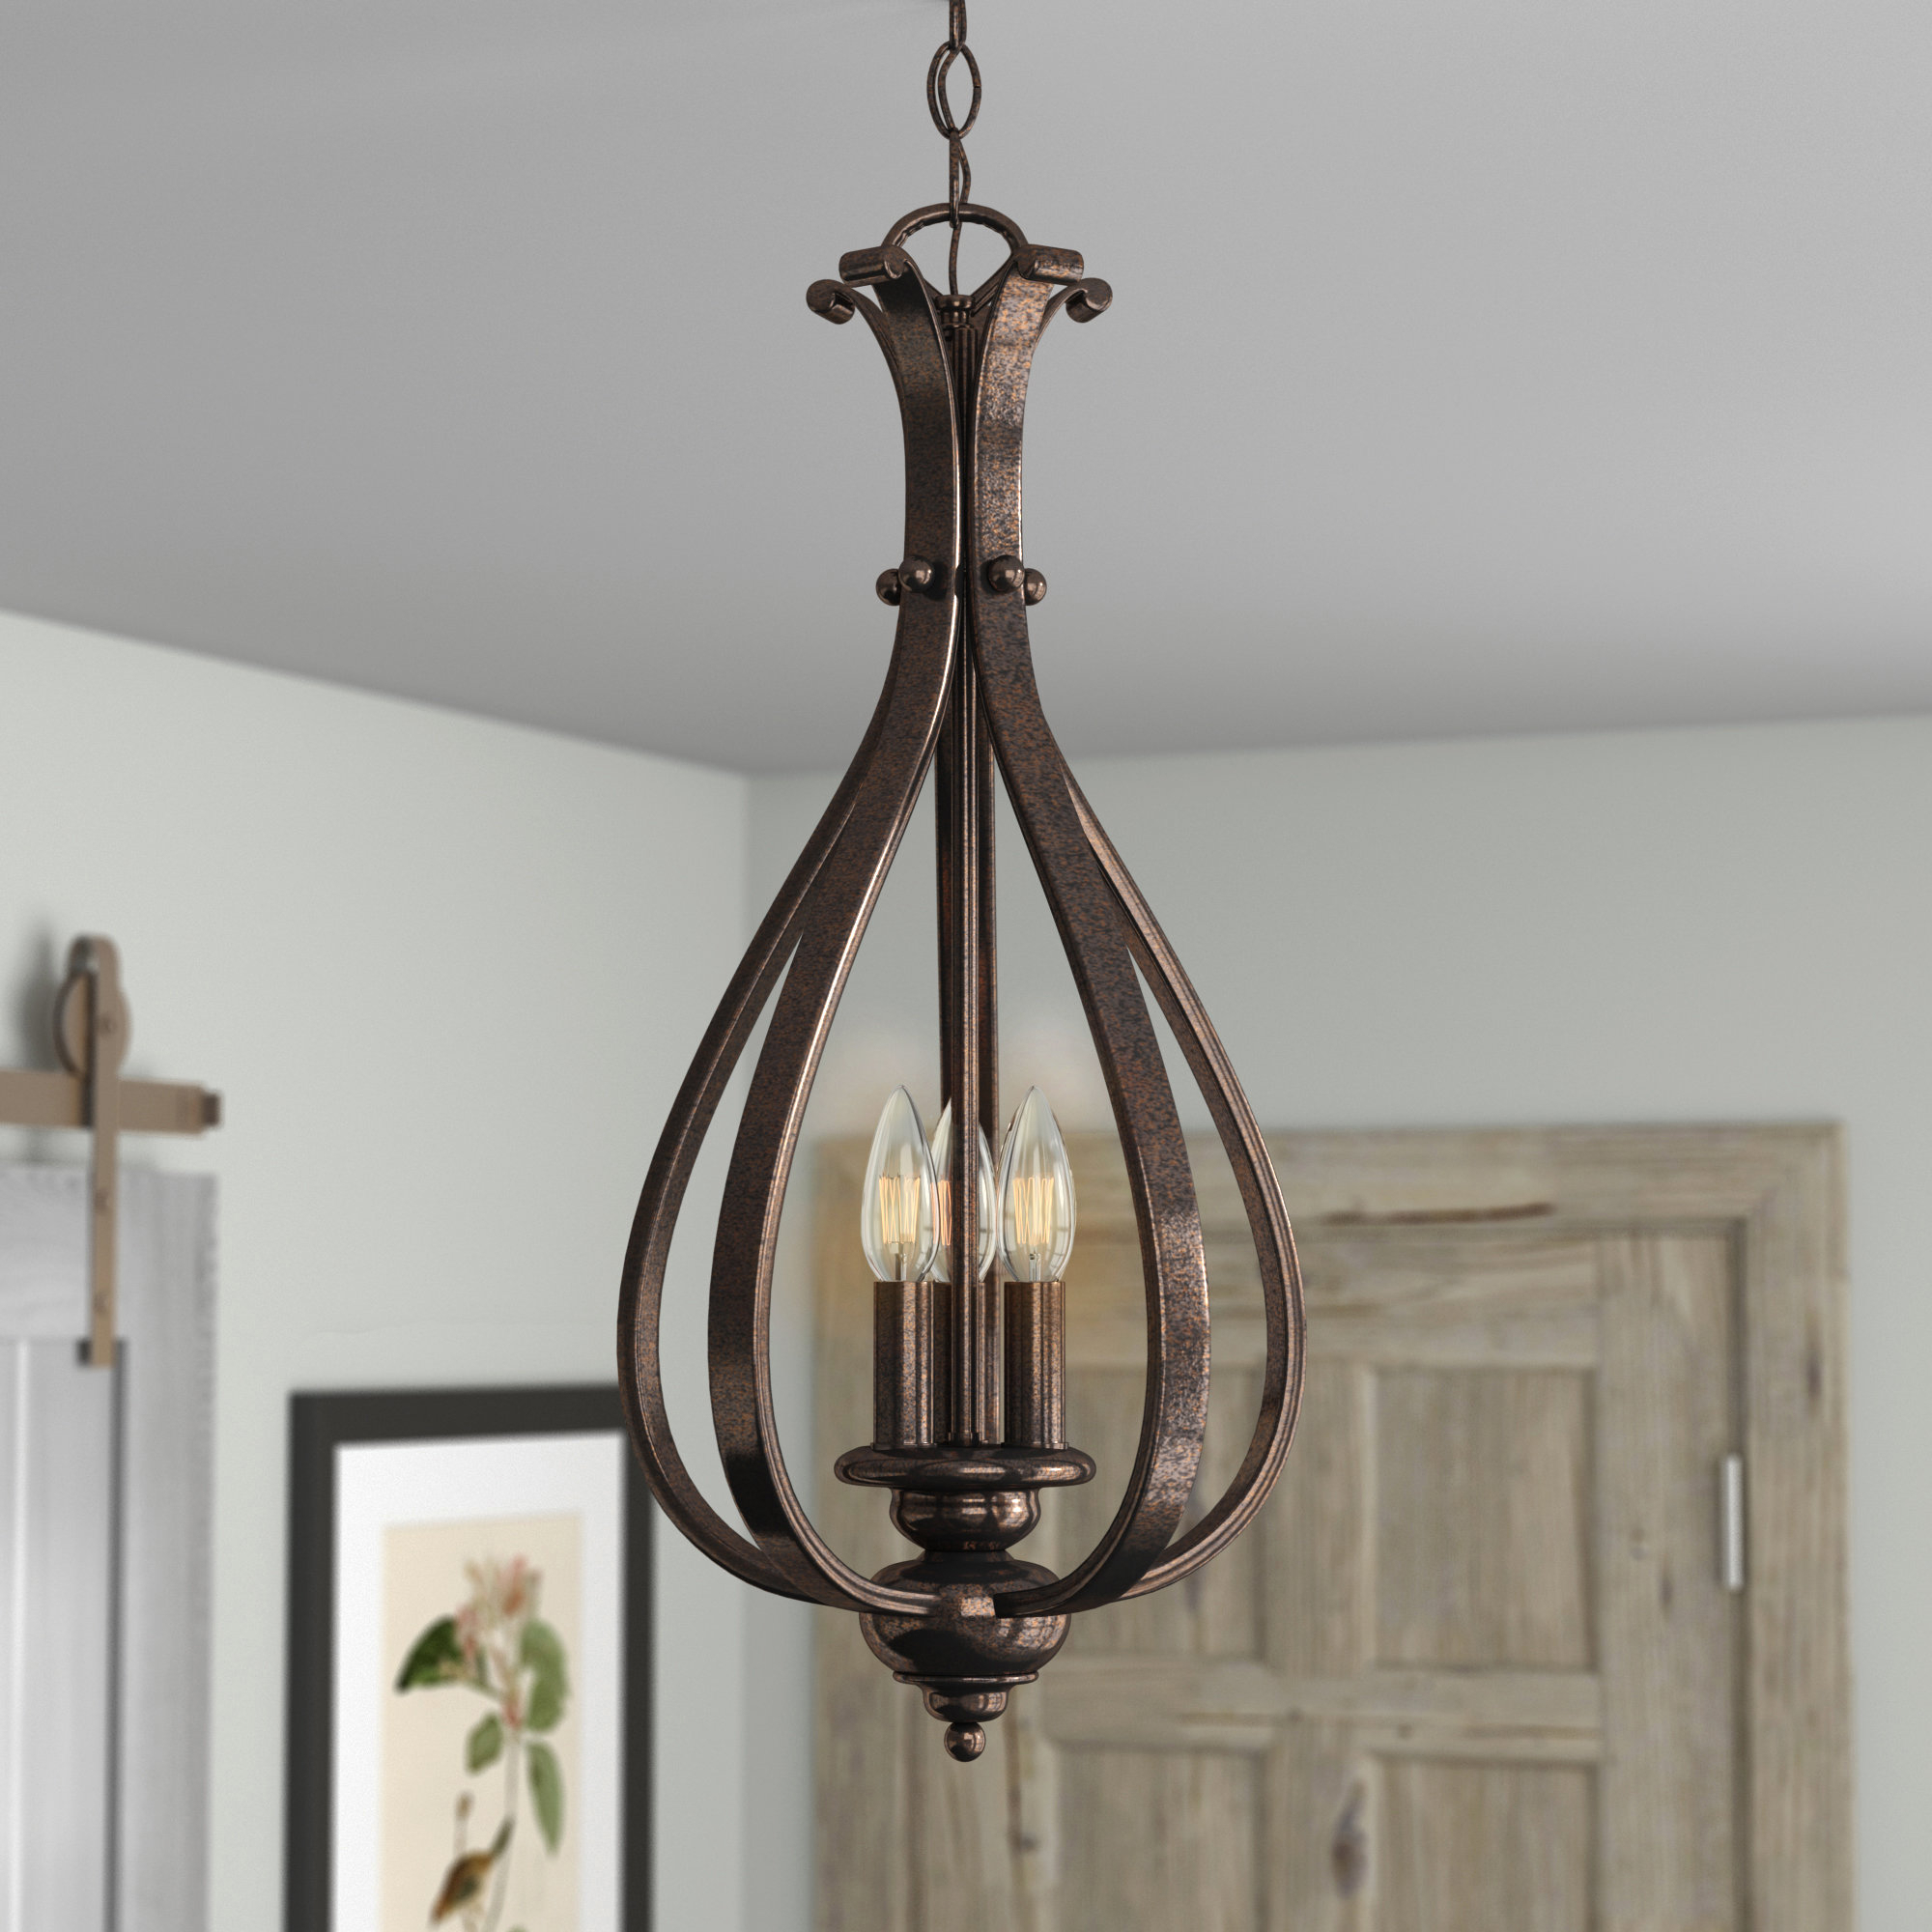 Most Current Van Horne 3 Light Foyer Pendant Pertaining To Van Horne 3 Light Single Teardrop Pendants (View 7 of 25)